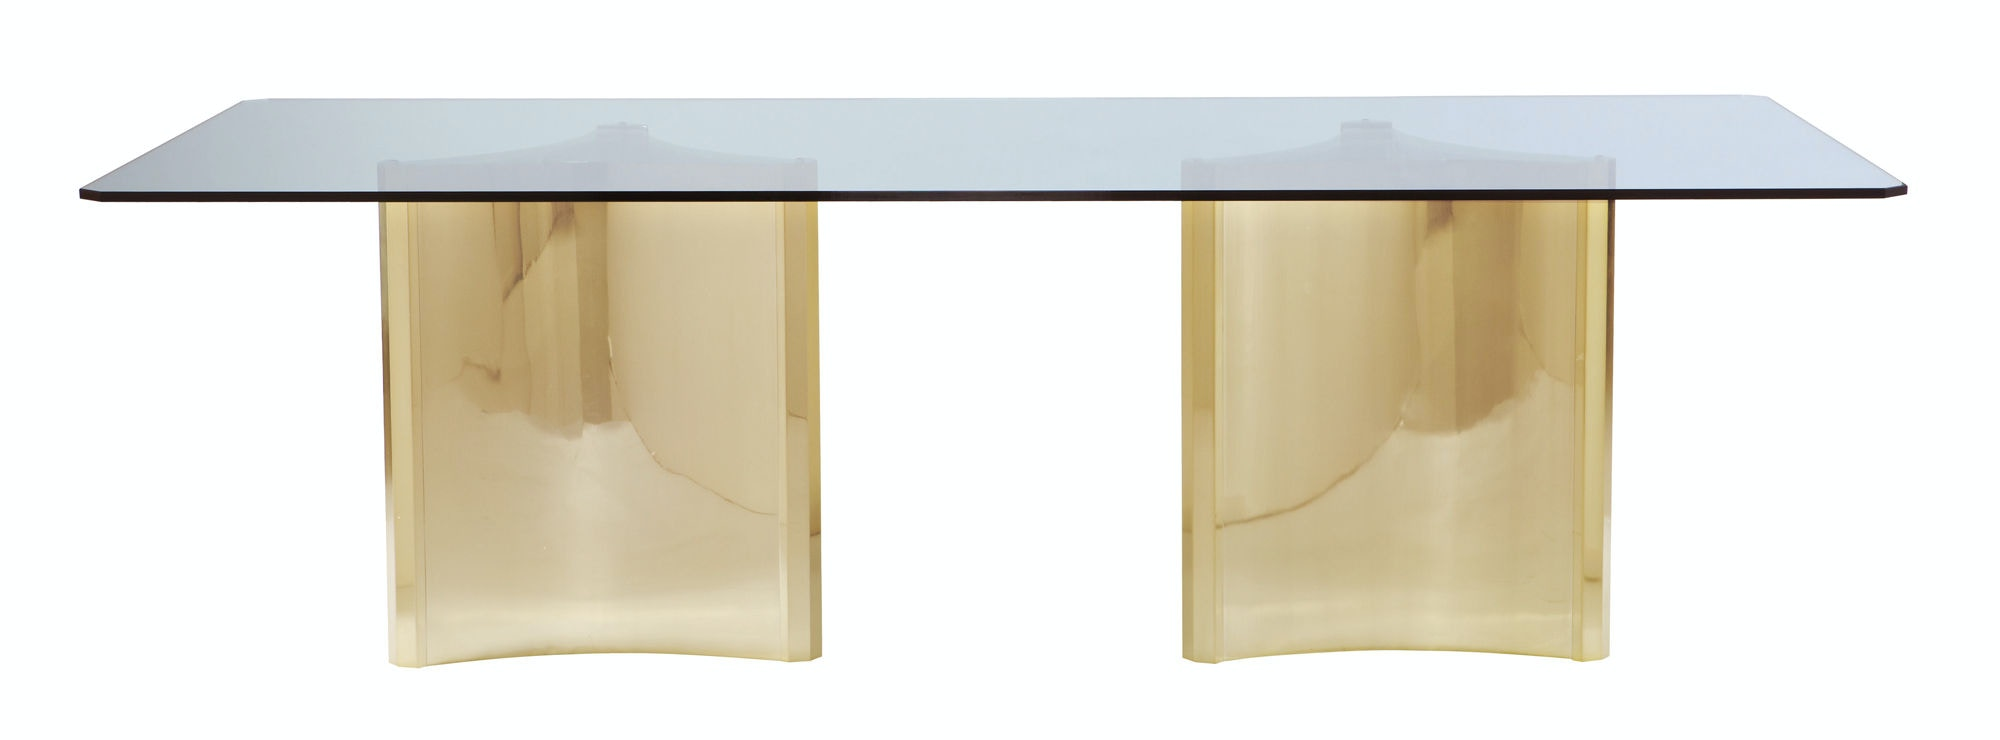 Bernhardt Interiors Metal Dining Table With Glass Top 326 1050/ 353 772